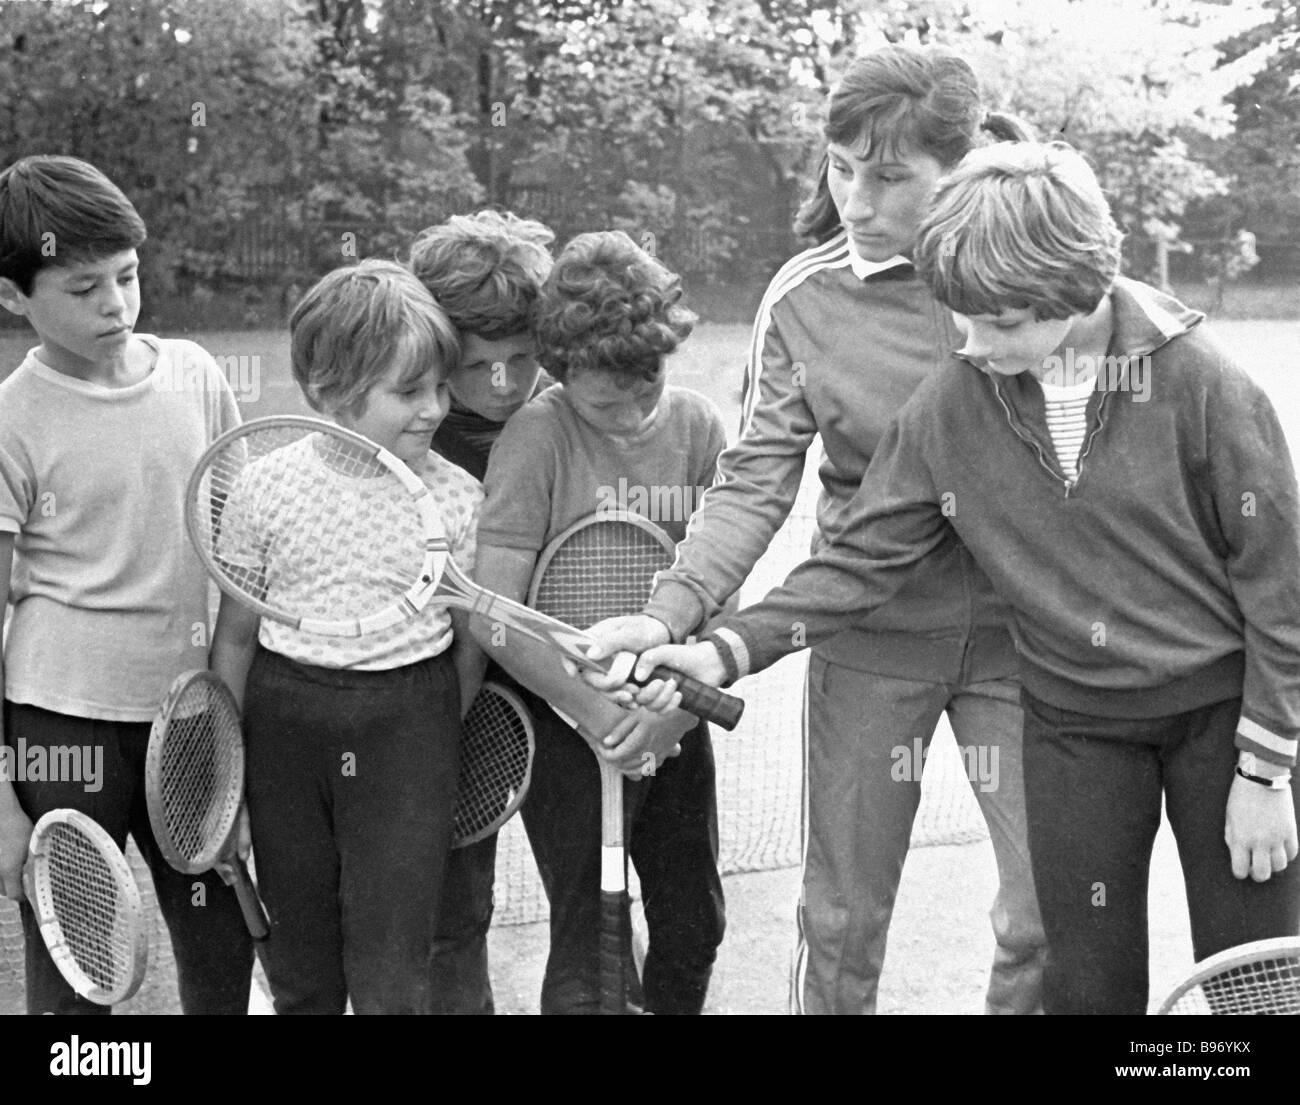 Soviet tennis player Olga Morozova second right with the pupils of